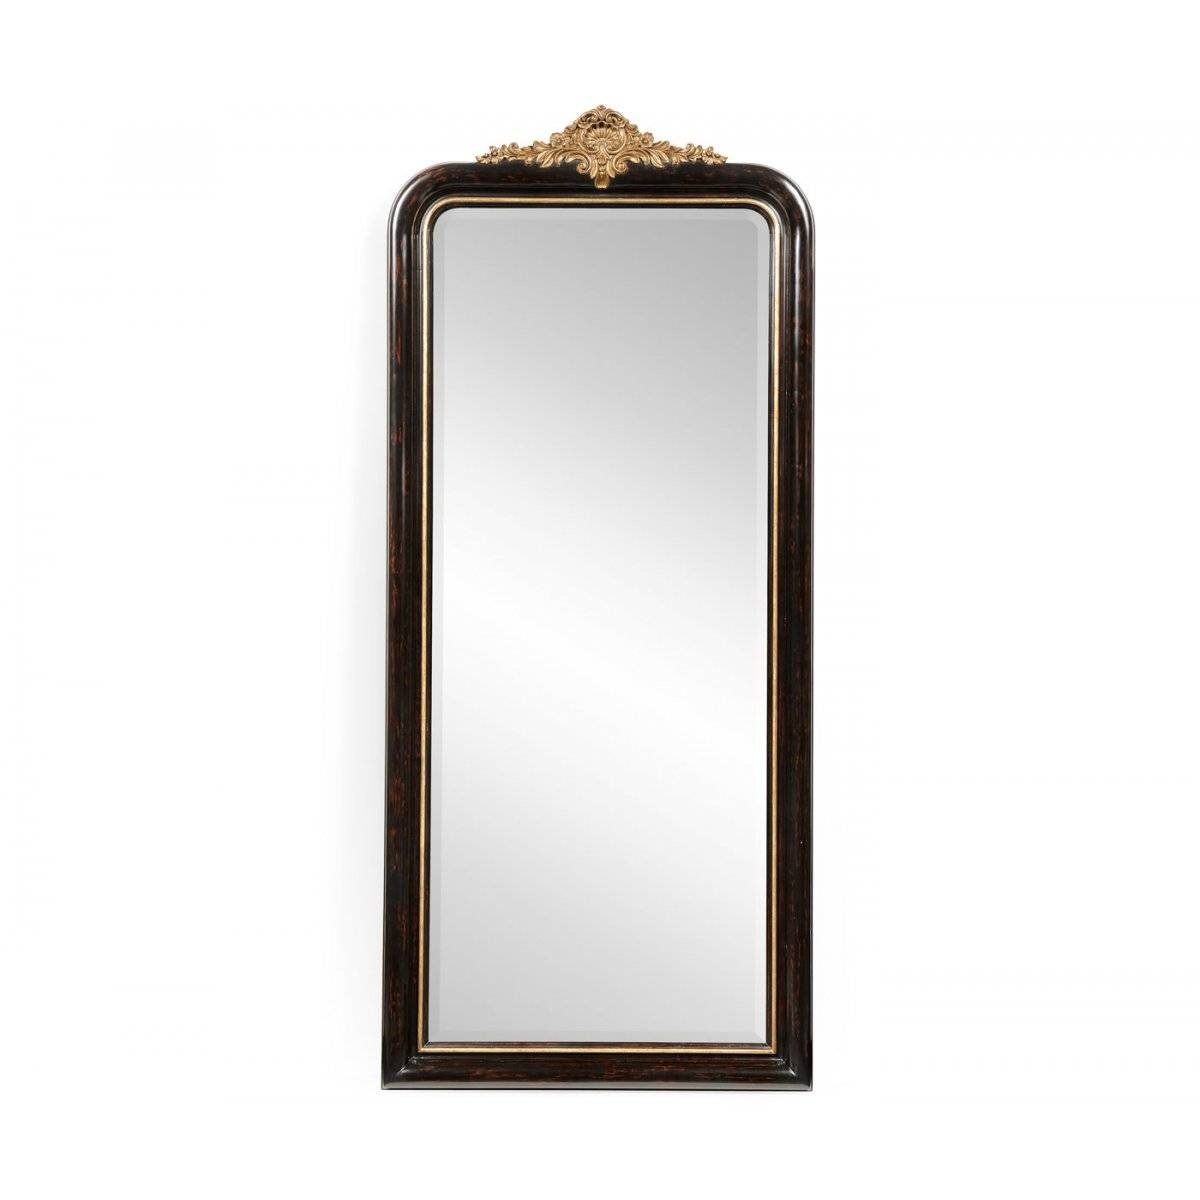 Full Length Black Mirror Gilded French Style | Swanky Interiors inside French Style Full Length Mirrors (Image 7 of 15)